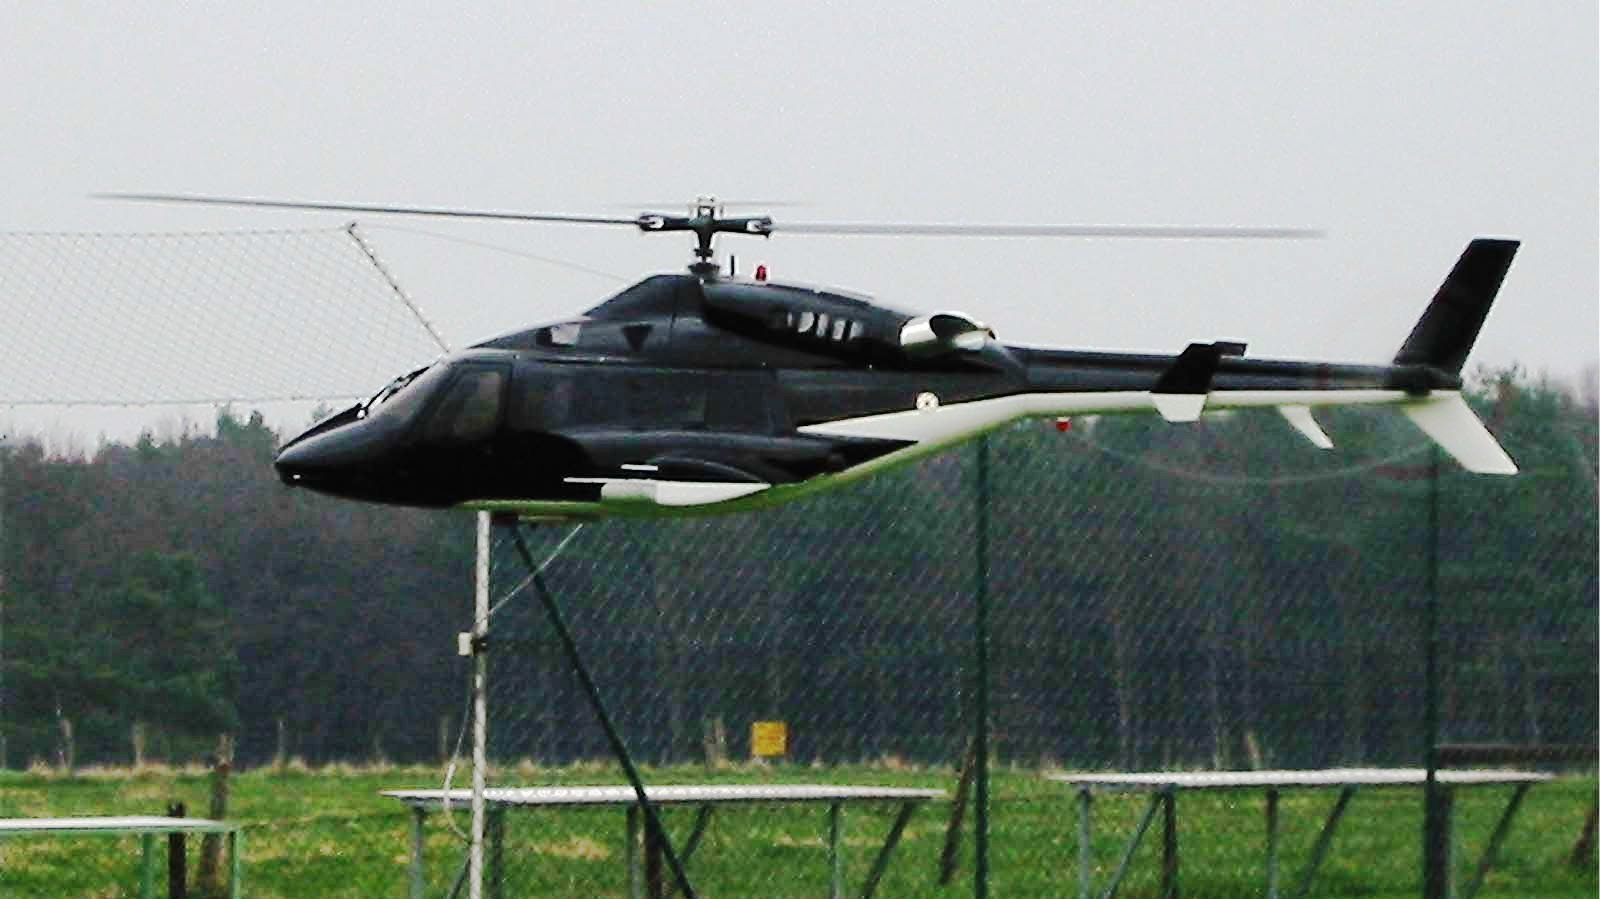 Wallpapers Pictures Photos  Air Wolf Helicopter Pictures